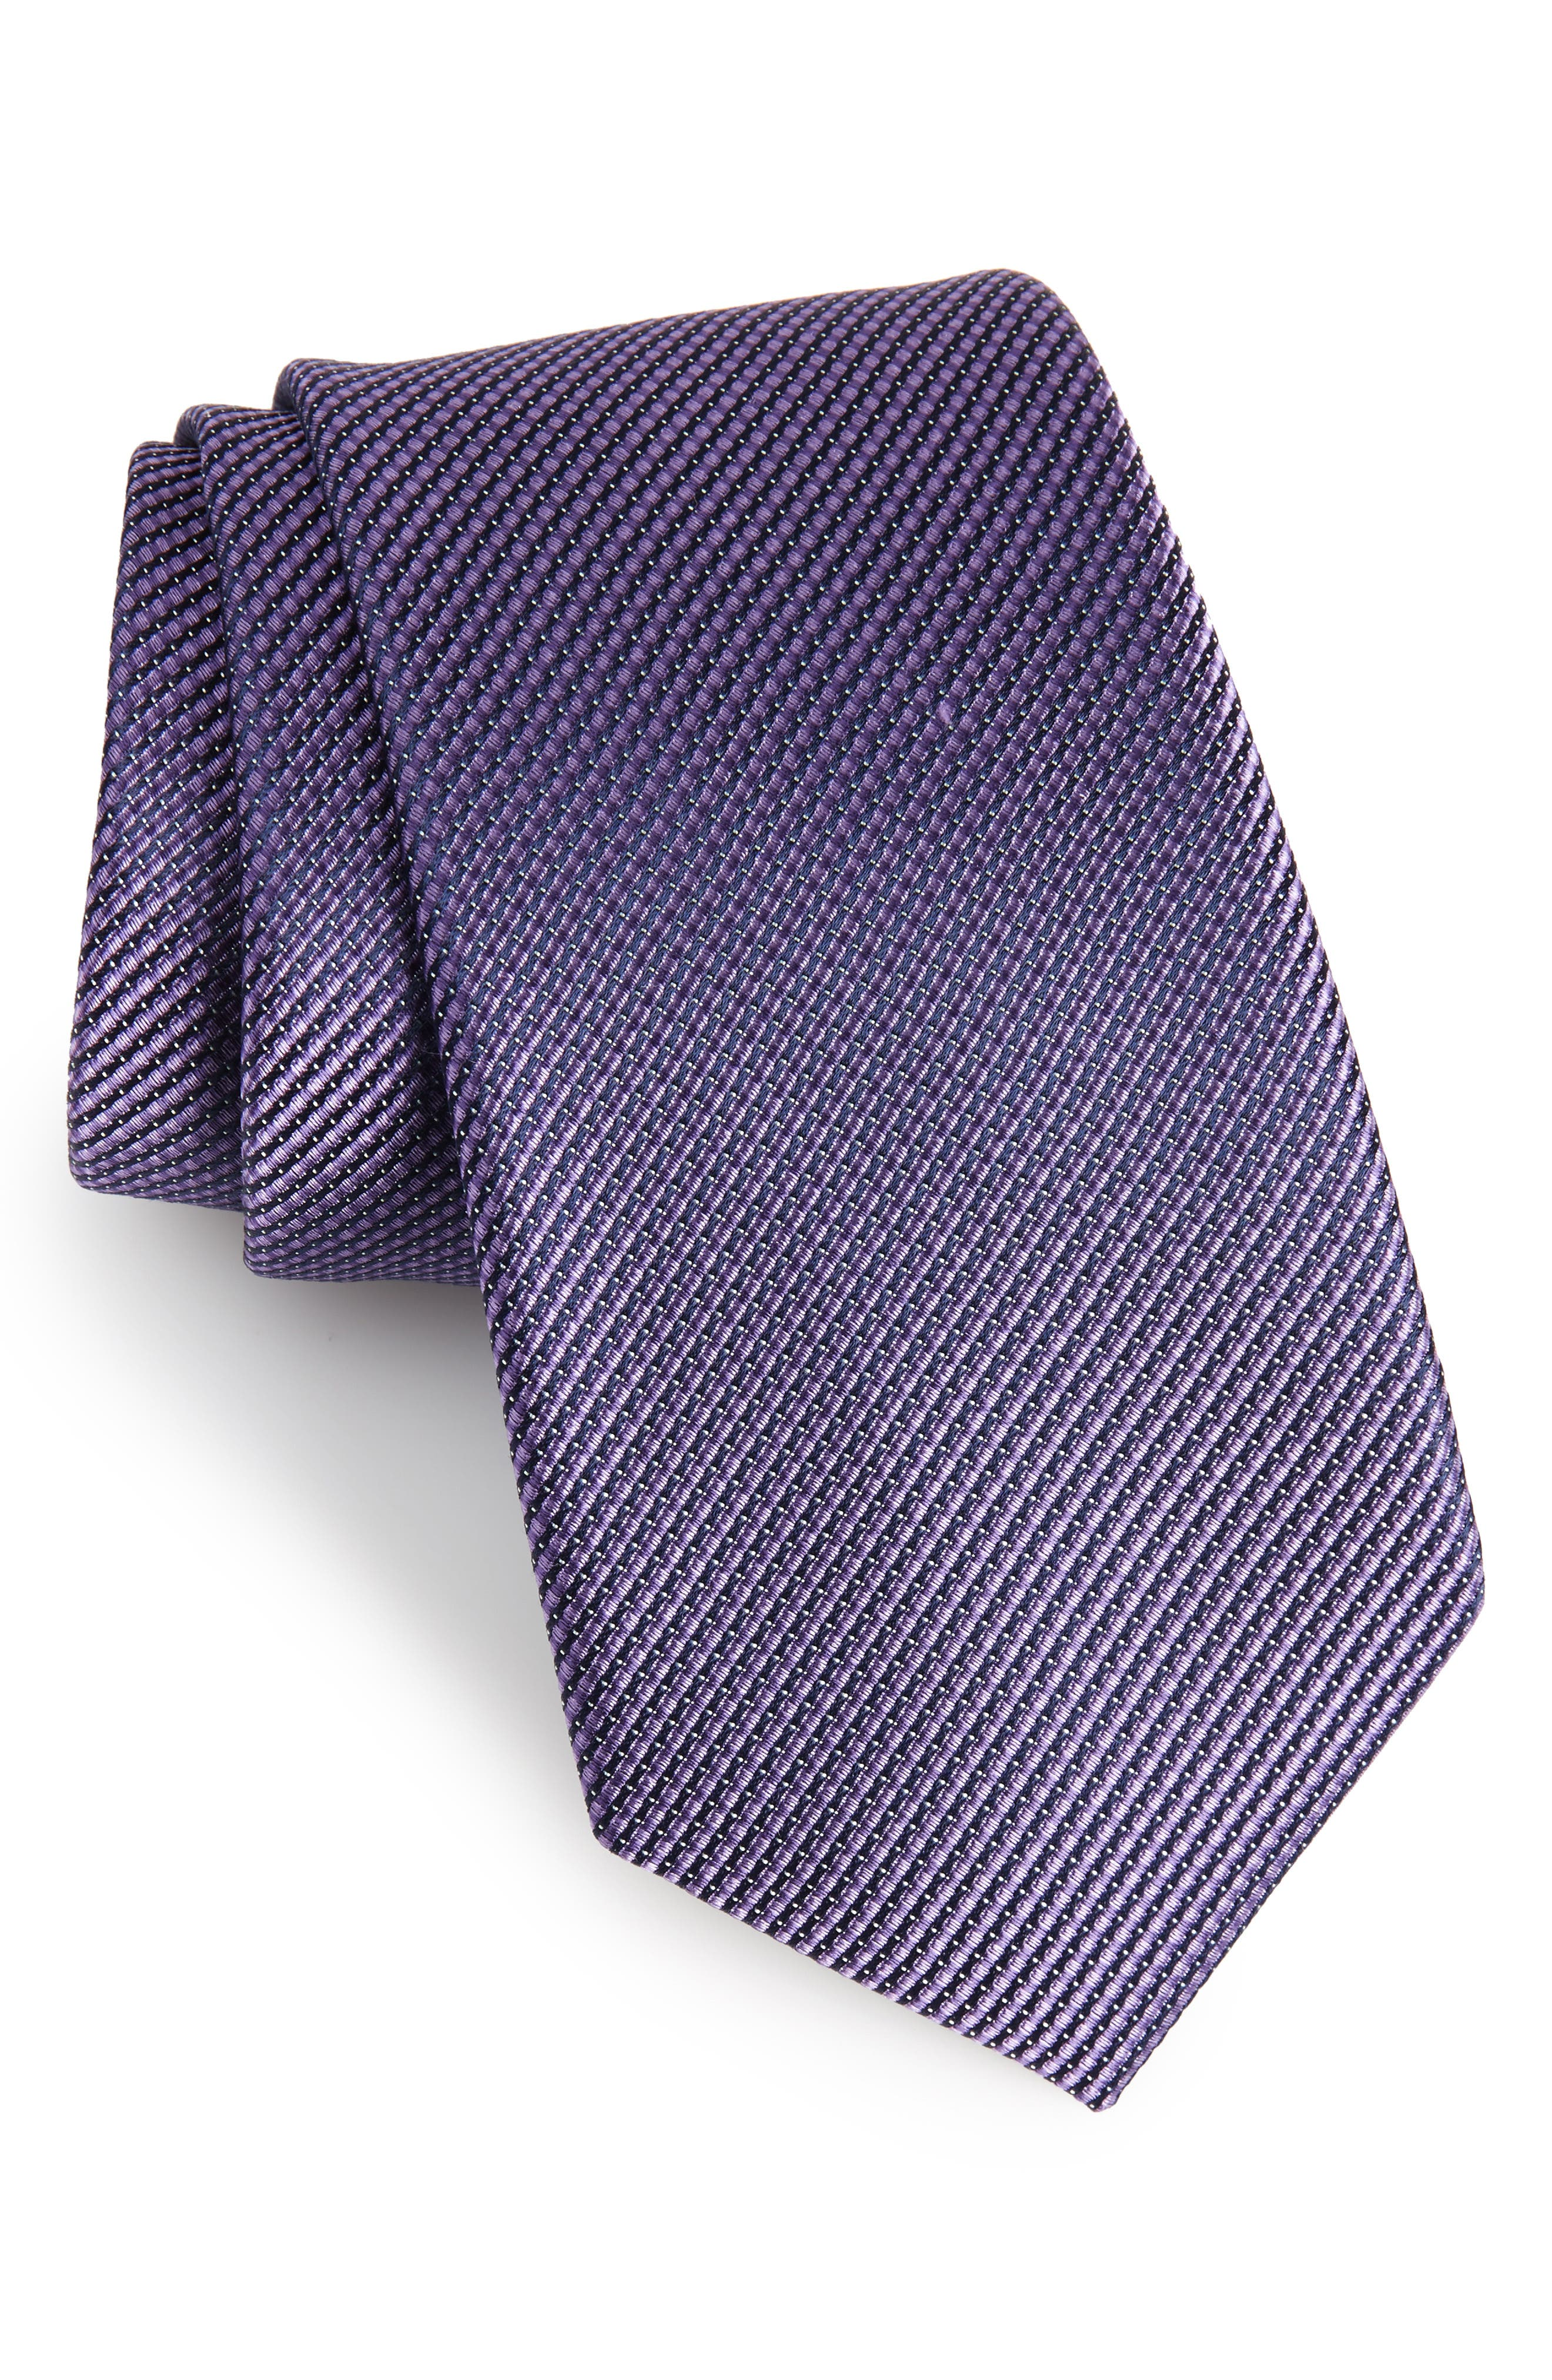 Main Image - Calibrate Amsberry Microcheck Silk Tie